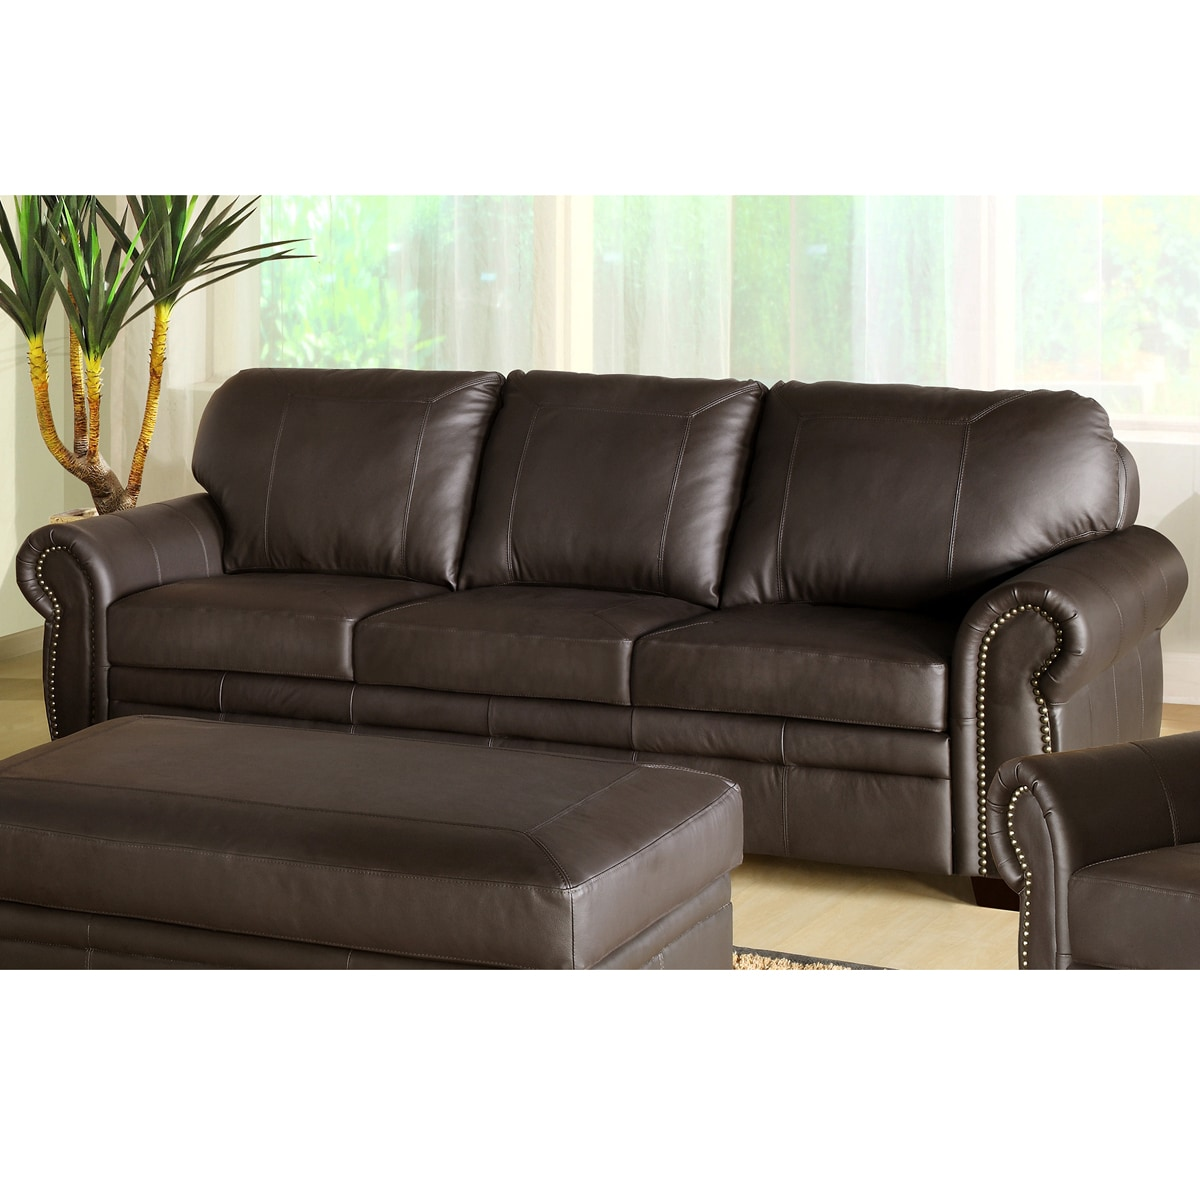 Abbyson Living Signature Italian Leather Sofa